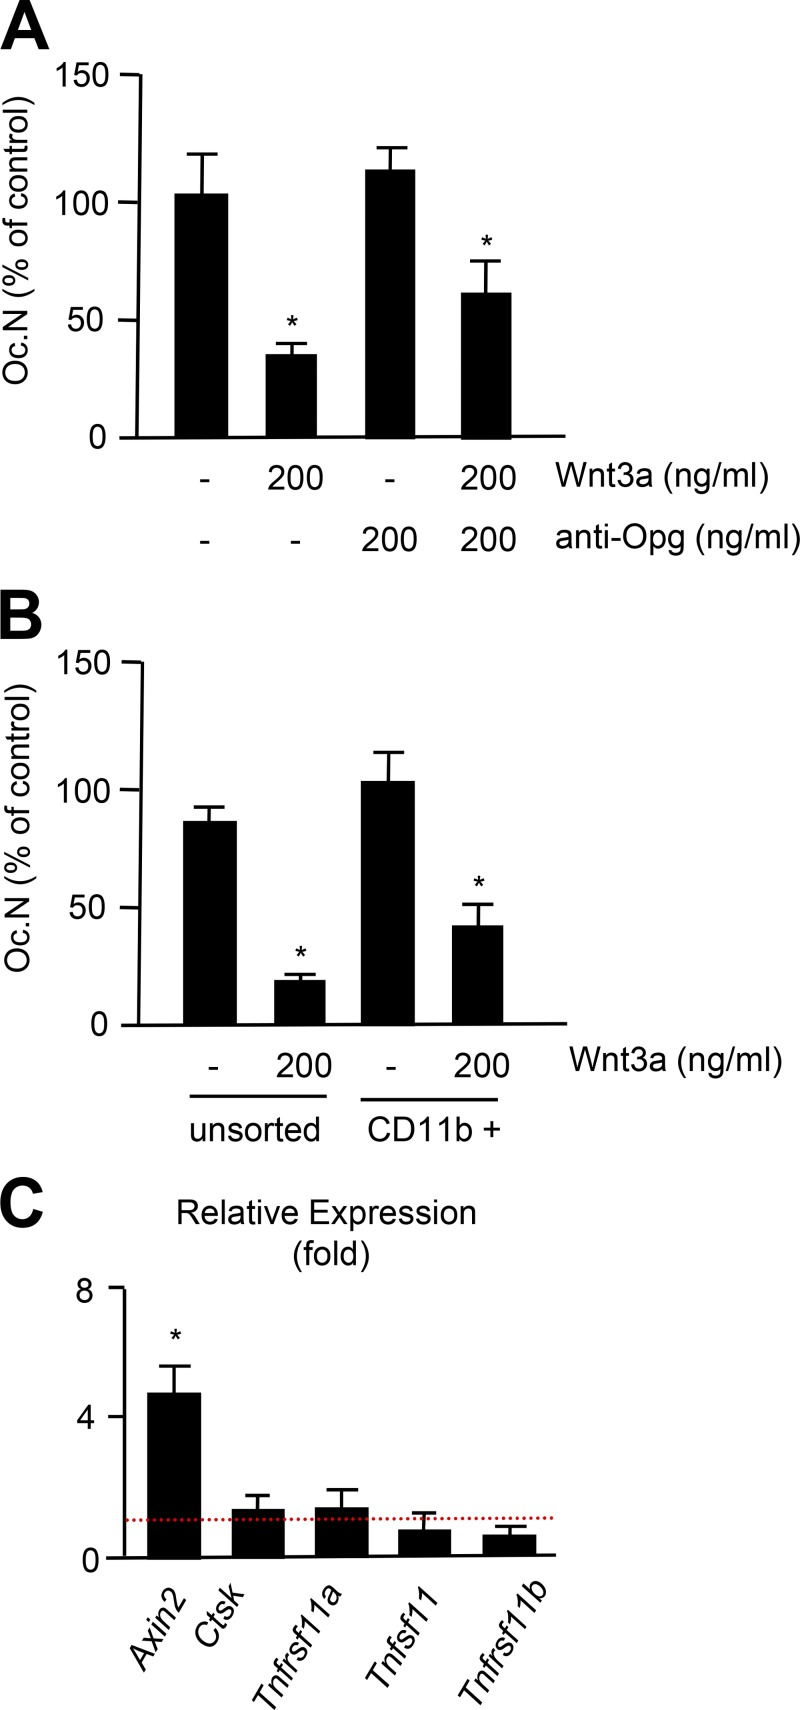 Opg-independent inhibition of osteoclastogenesis by Wnt3a. (A) Quantification of TRAP-positive multinucleated cells generated after 7 d of culture in the presence of Wnt3a and/or an anti-Opg antibody. Error bars represent mean ± SD ( n = 6). Asterisks indicate statistically significant differences compared with controls. (B) Quantification of TRAP-positive multinucleated cells generated from unsorted or CD11b-purified bone marrow cells after 7 d of culture in the presence of Wnt3a. Error bars represent mean ± SD ( n = 6). Asterisks indicate statistically significant differences compared with controls. (C) qRT-PCR expression analysis of the indicated genes in CD11b-purified bone marrow cells after treatment with 200 ng/ml Wnt3a for 6 h relative to untreated cells. Error bars represent mean ± SD ( n = 4). Asterisks indicate statistically significant differences compared with controls.